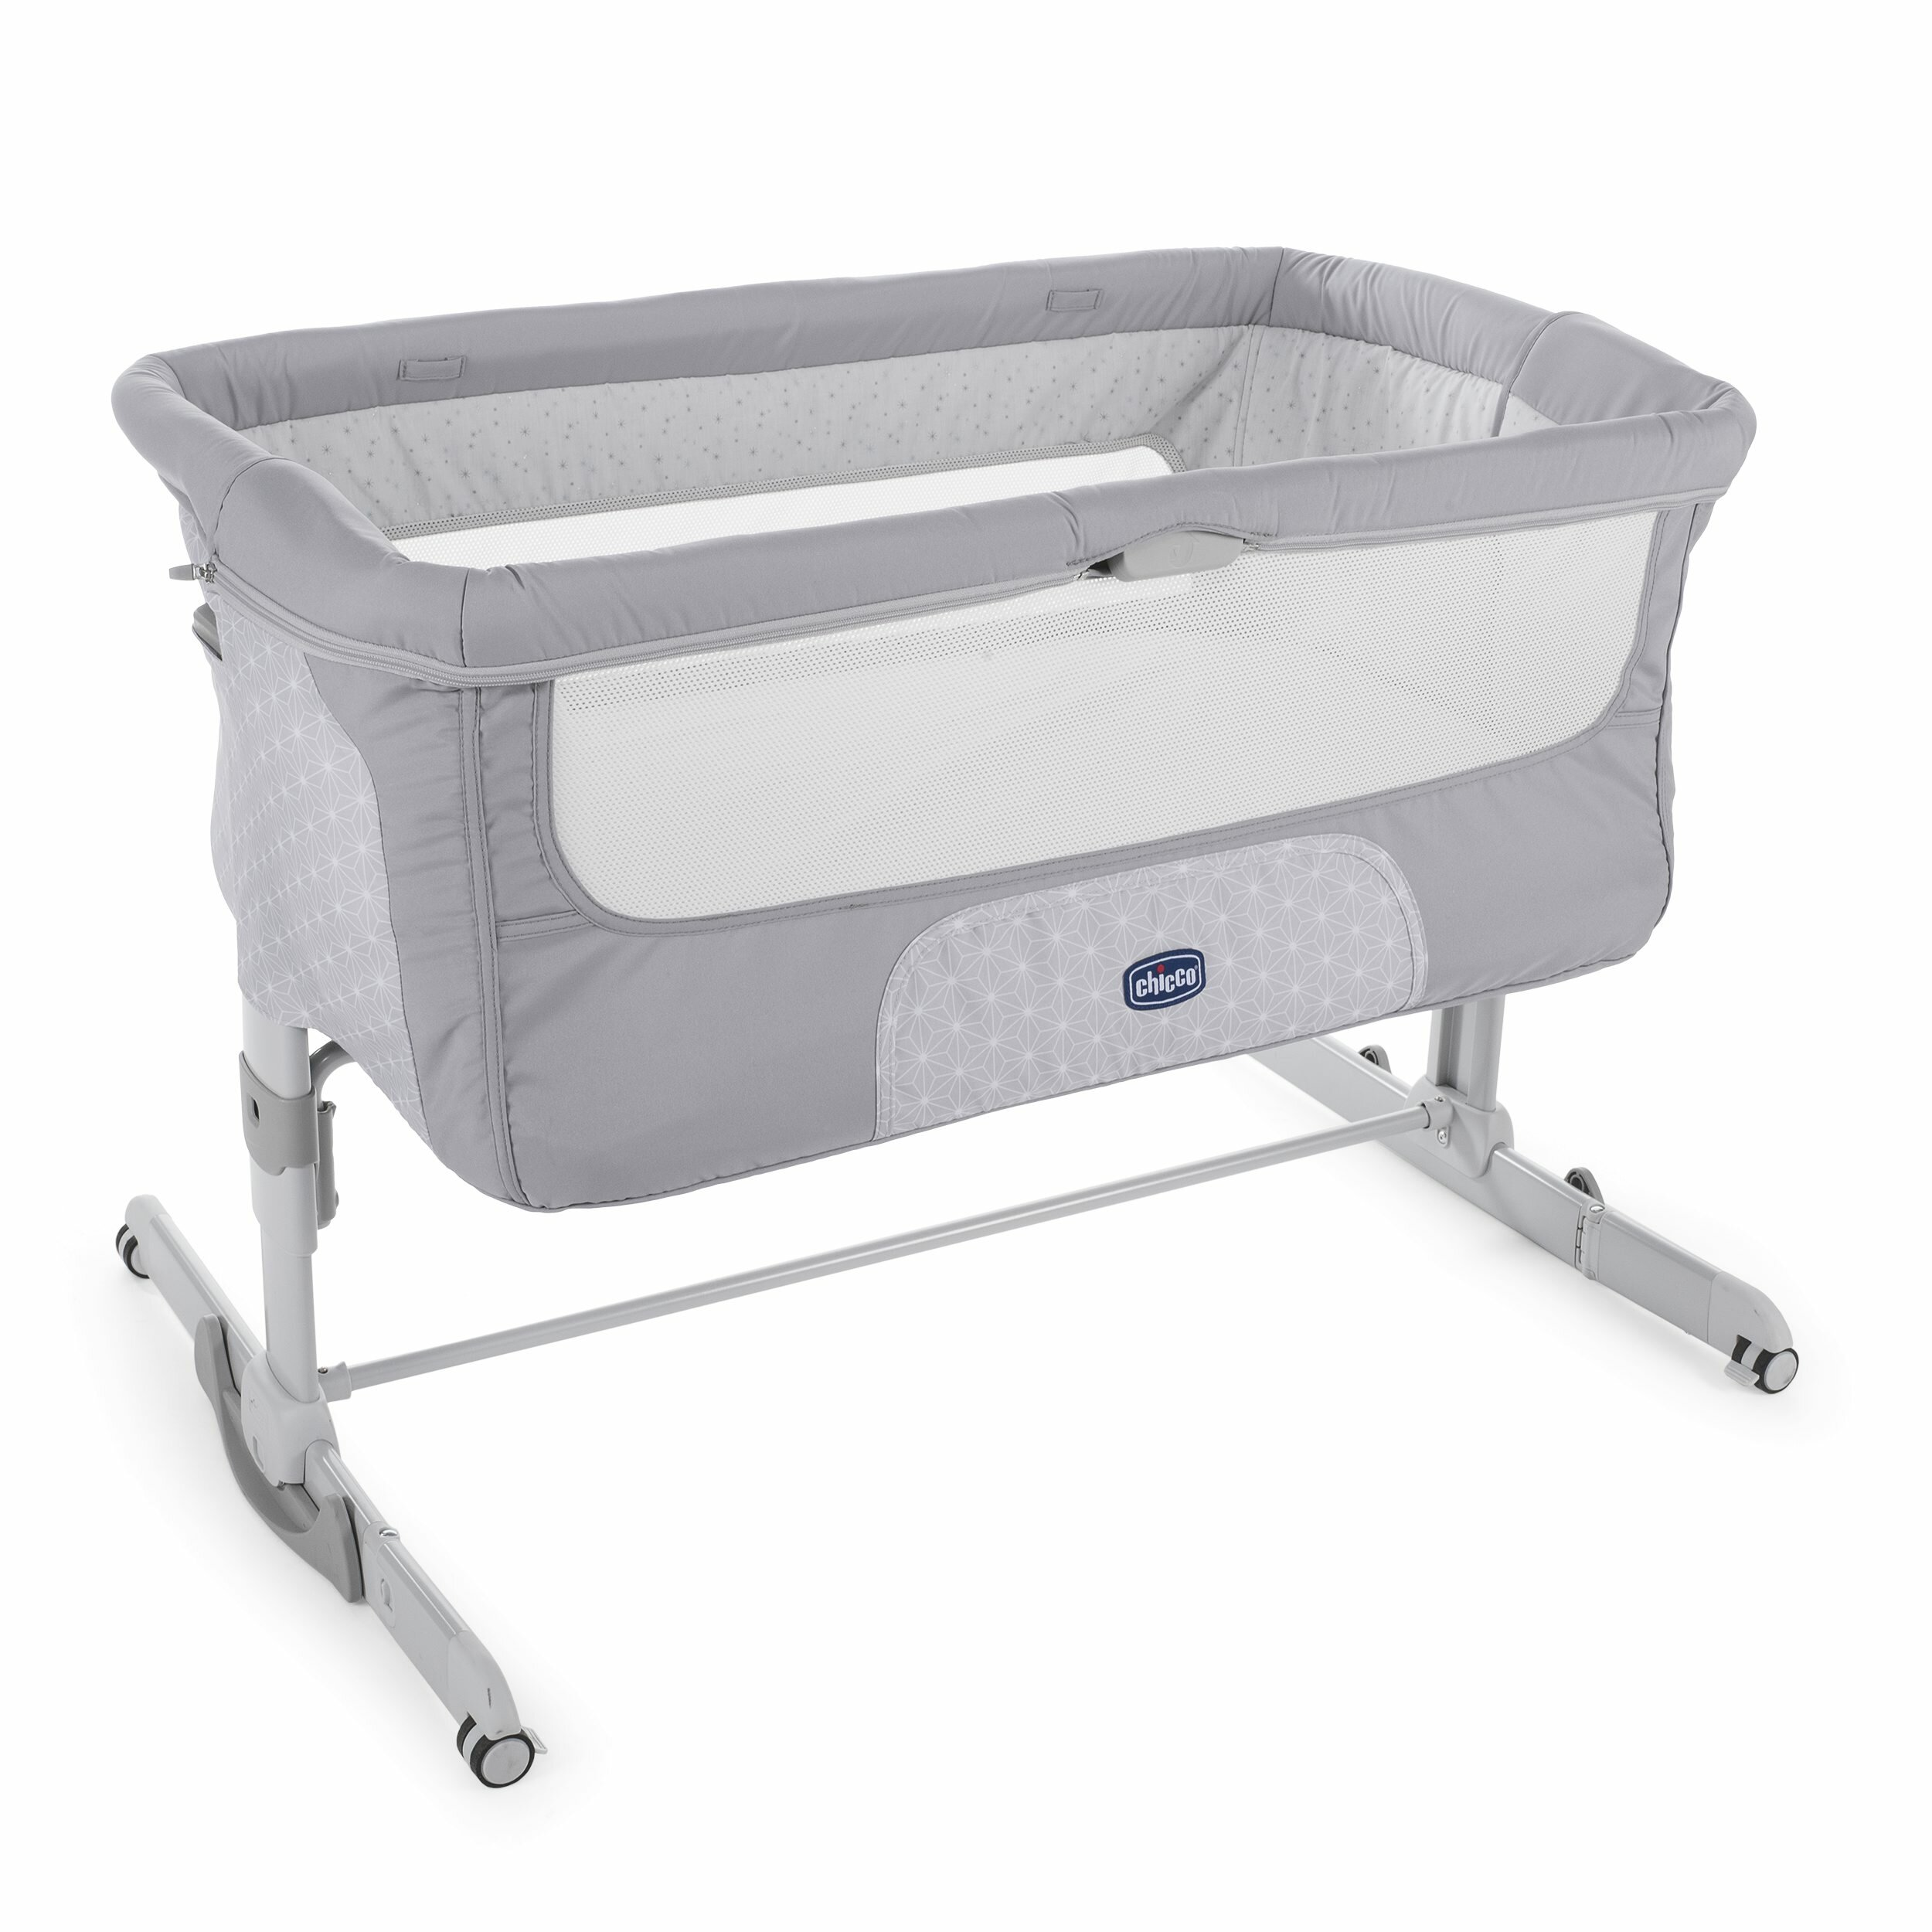 Crib Baby Quilted /& Breathable Cradle Swing PRAM COT Mattress 80 x 43 x 4.5 cm